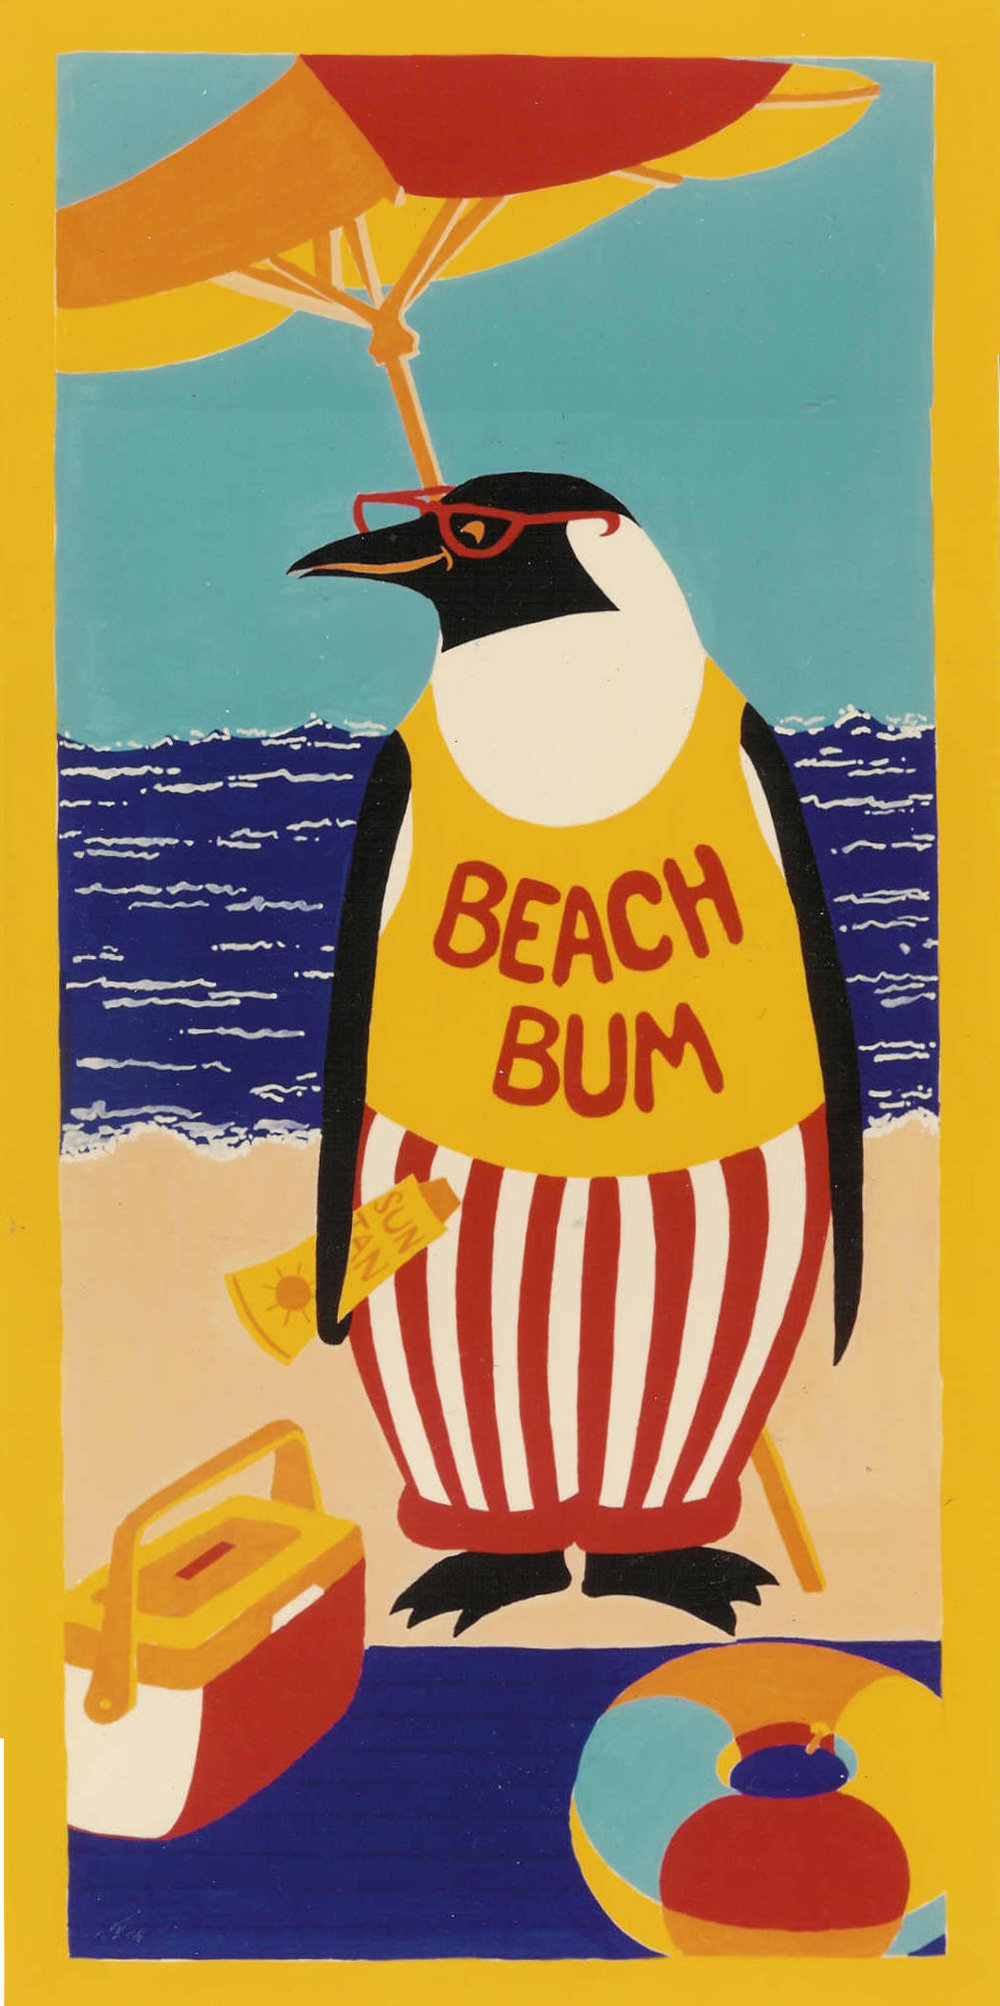 beach bum beach towel.jpg